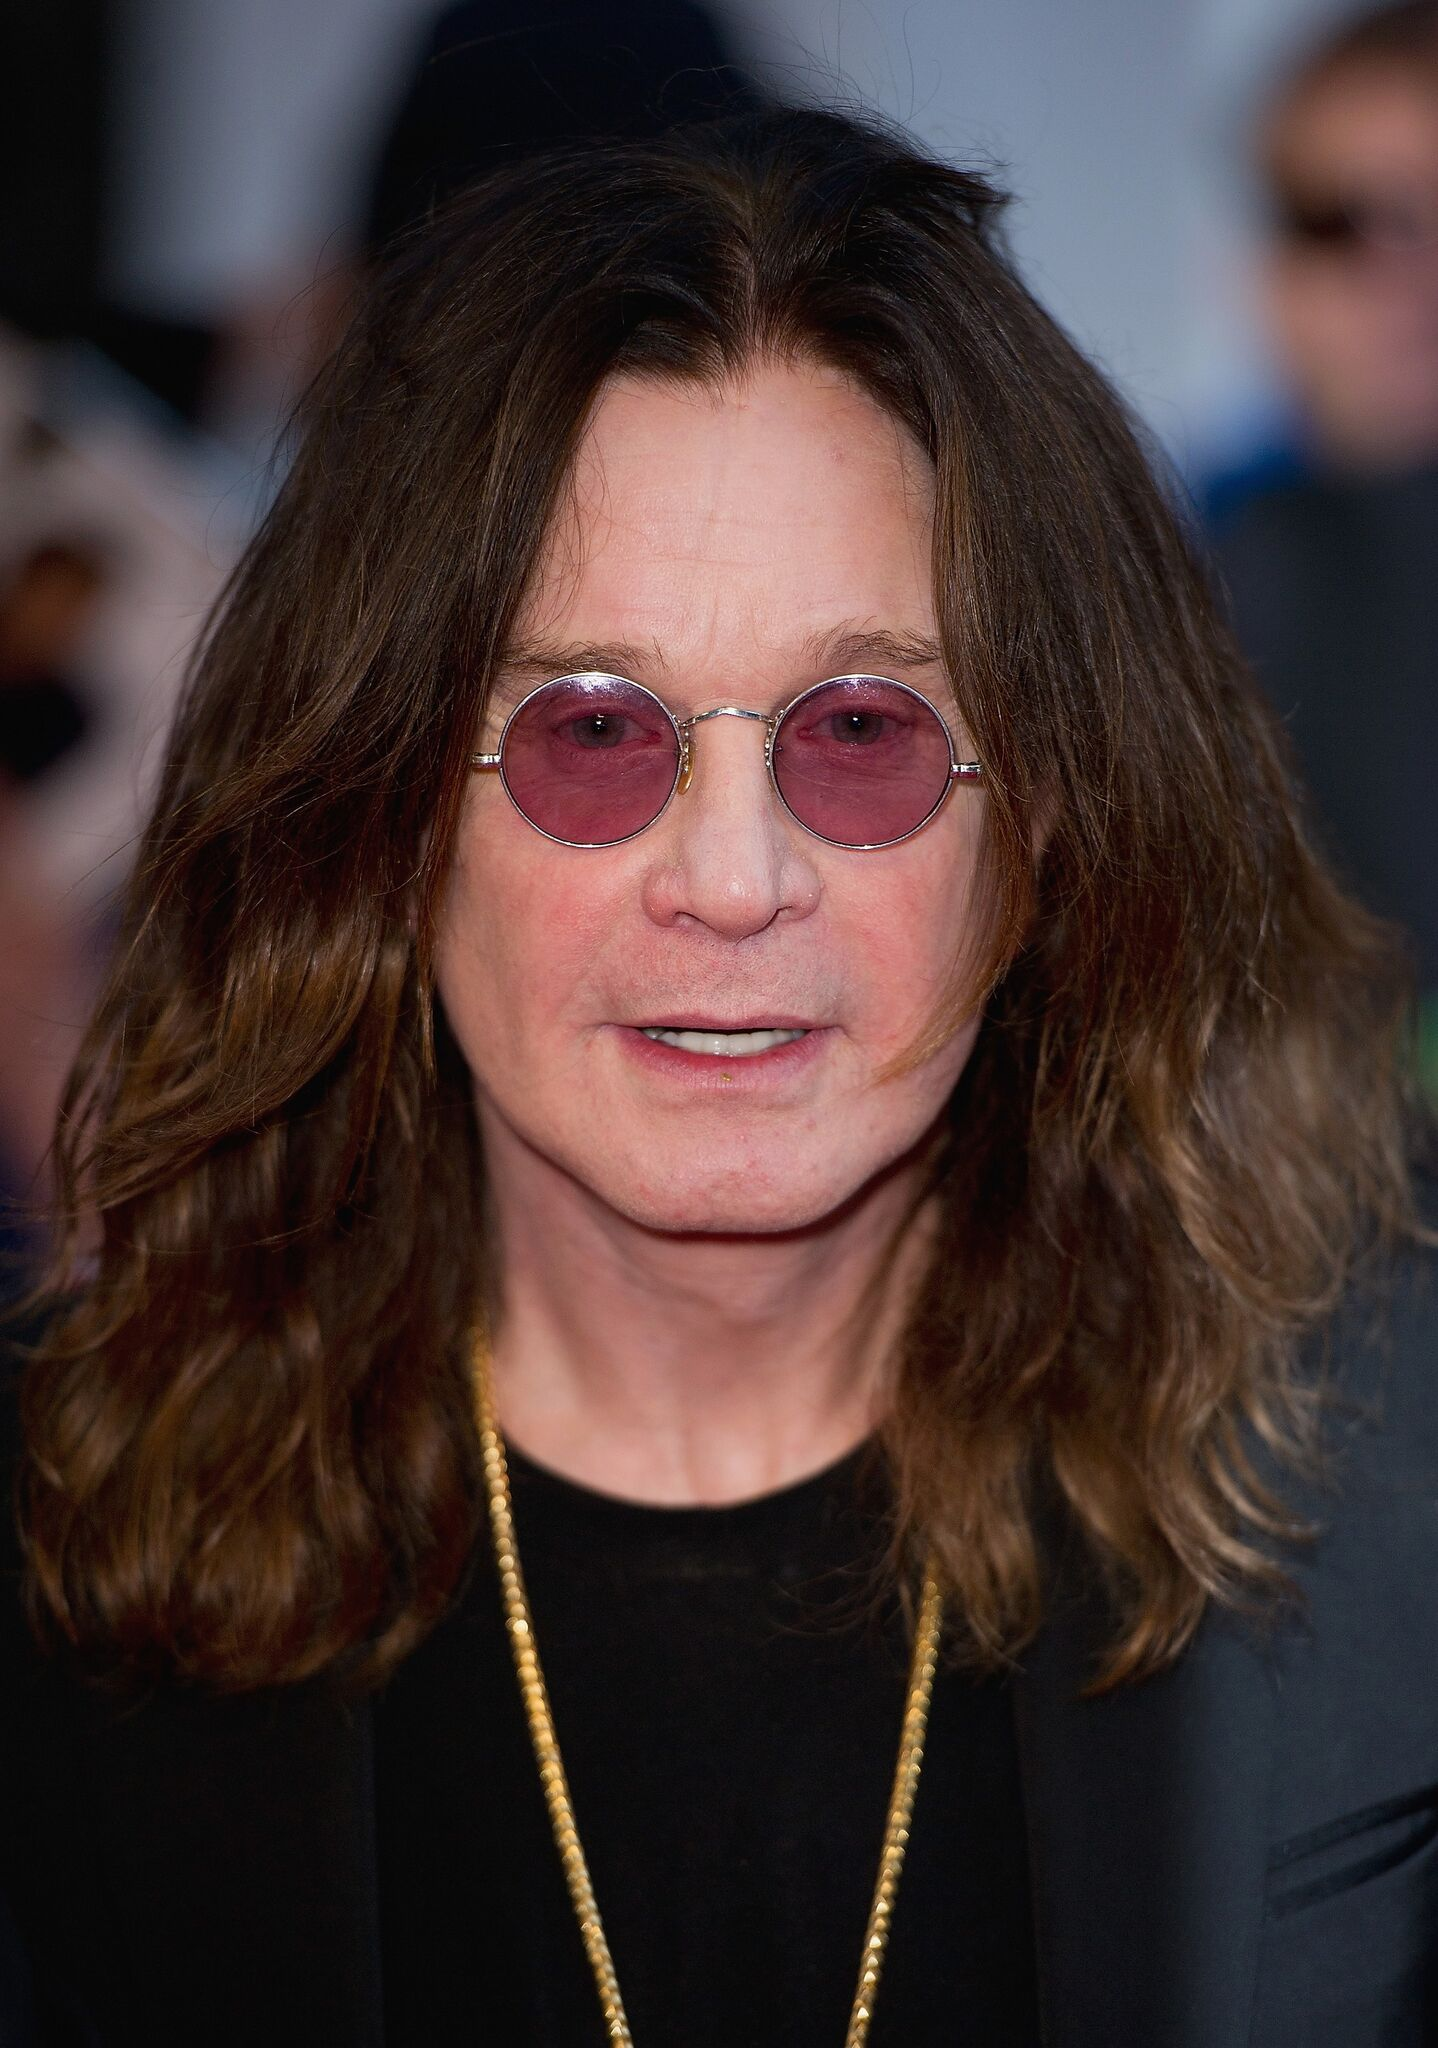 Ozzy Osbourne attends the Pride of Britain awards at The Grosvenor House Hotel  | Getty Images